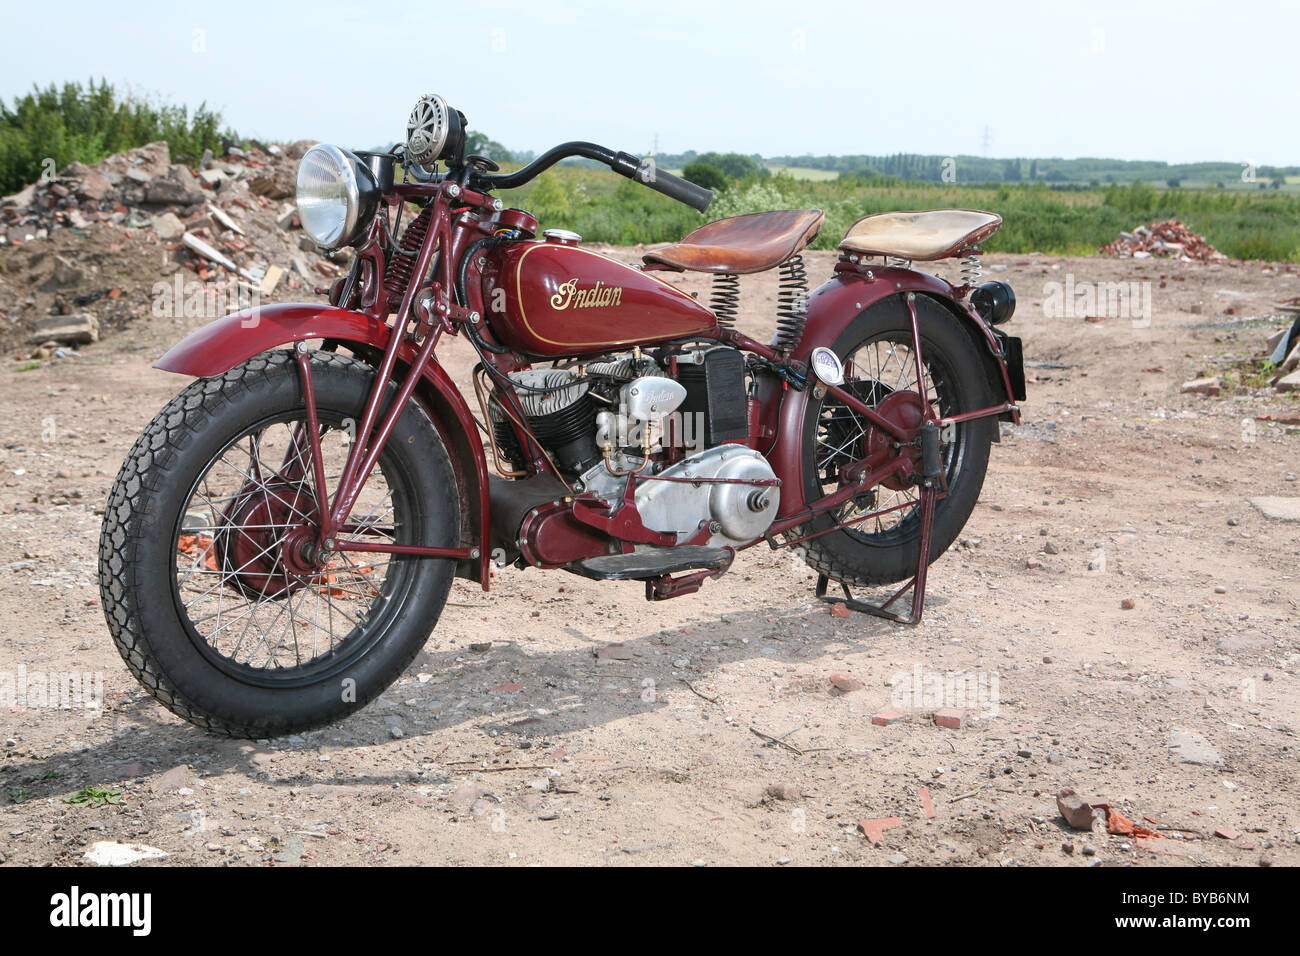 indian motorcycle stock photos & indian motorcycle stock images - alamy